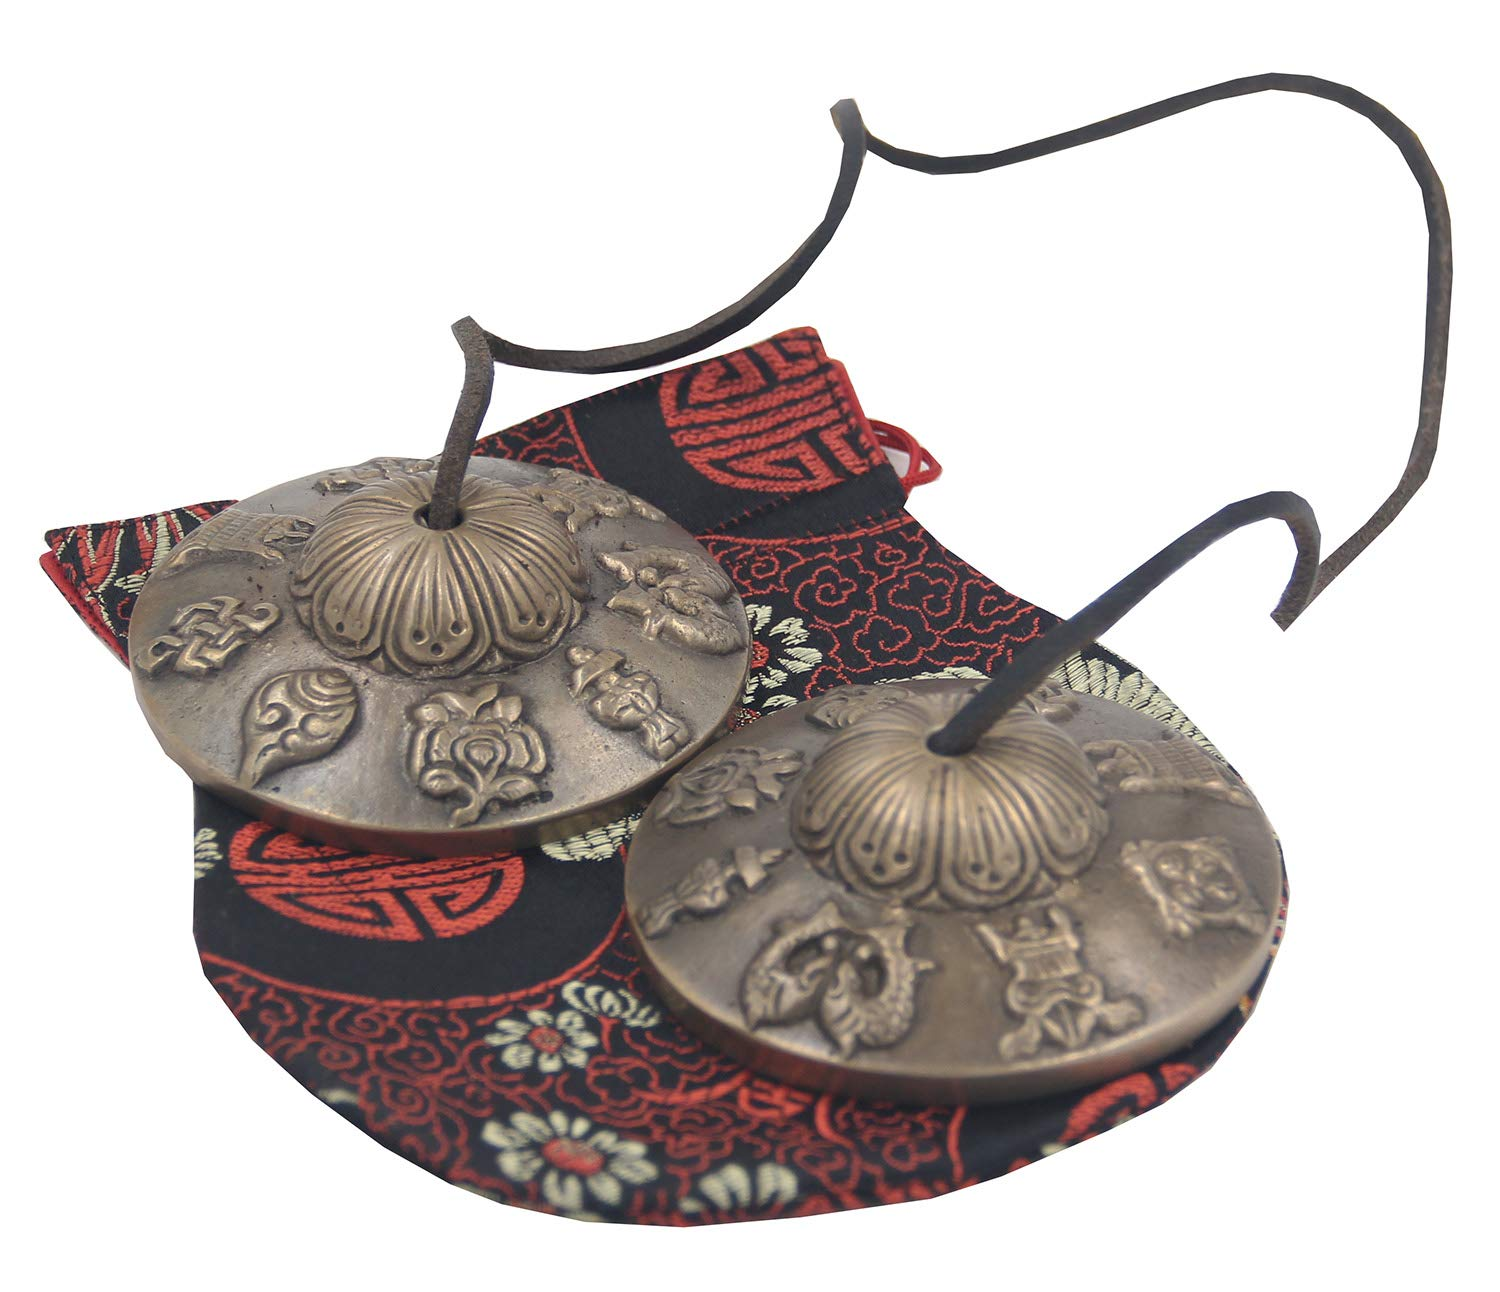 DharmaObjects Large Tibetan Premium Quality''8 Lucky Symbols'' Tingsha Cymbals 3'' With Pouch by DharmaObjects